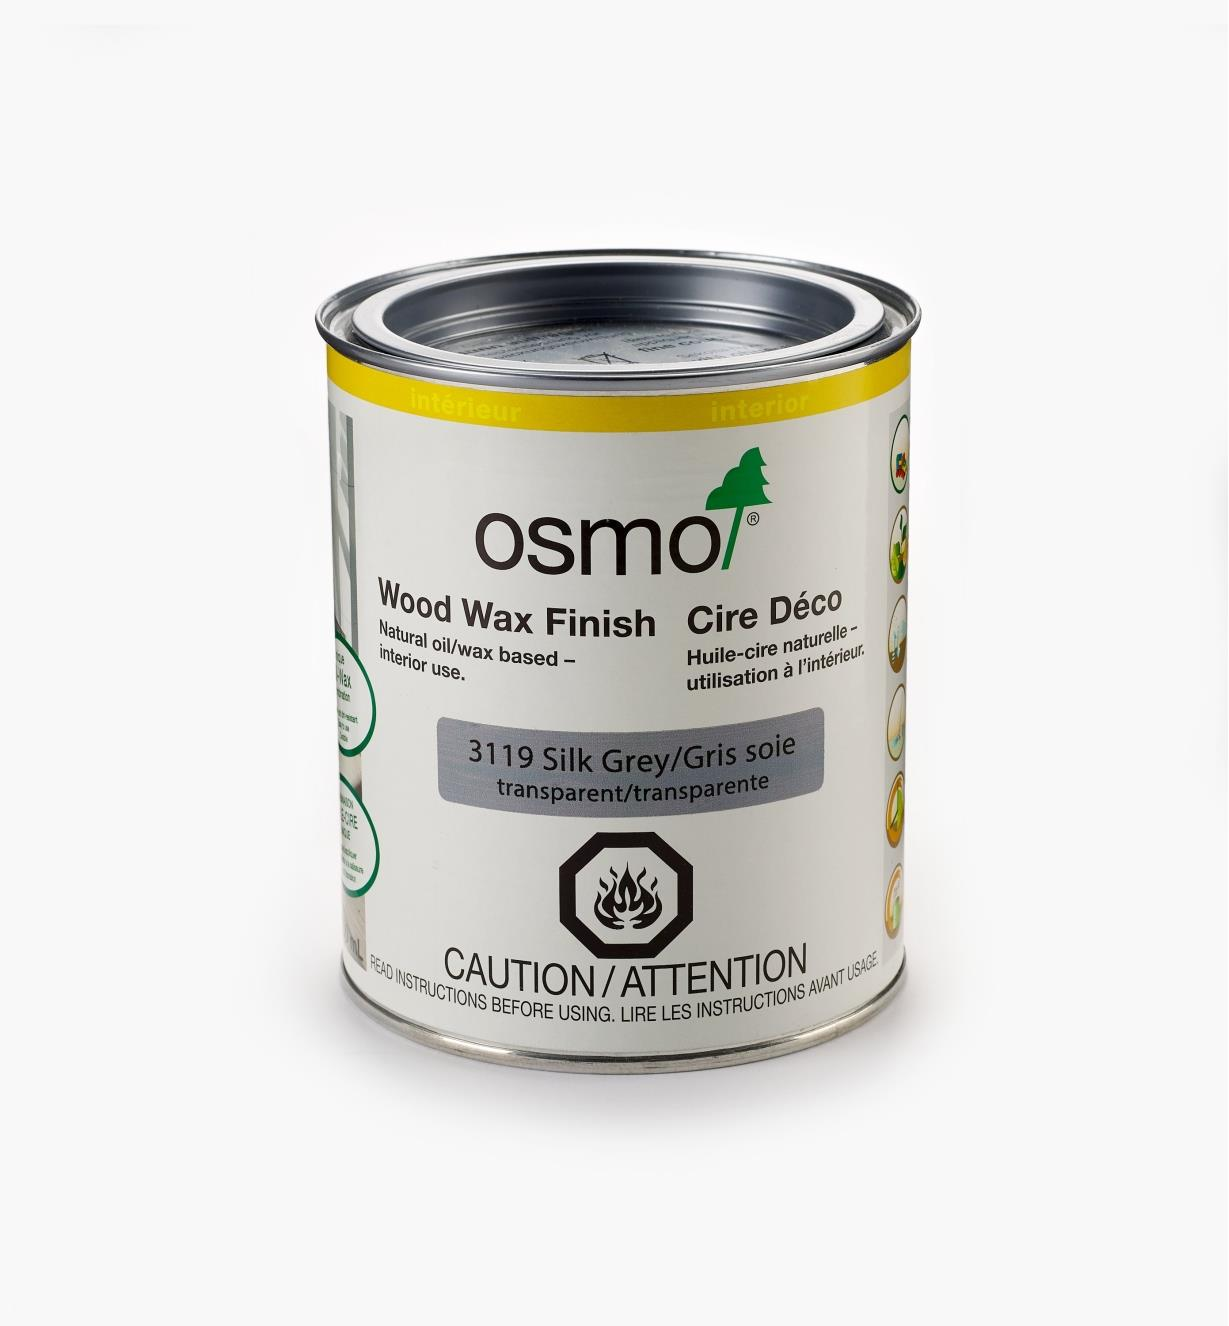 27K2755 - Osmo Wood Wax 3119 Silk Gray, 750ml (25.5 fl oz)